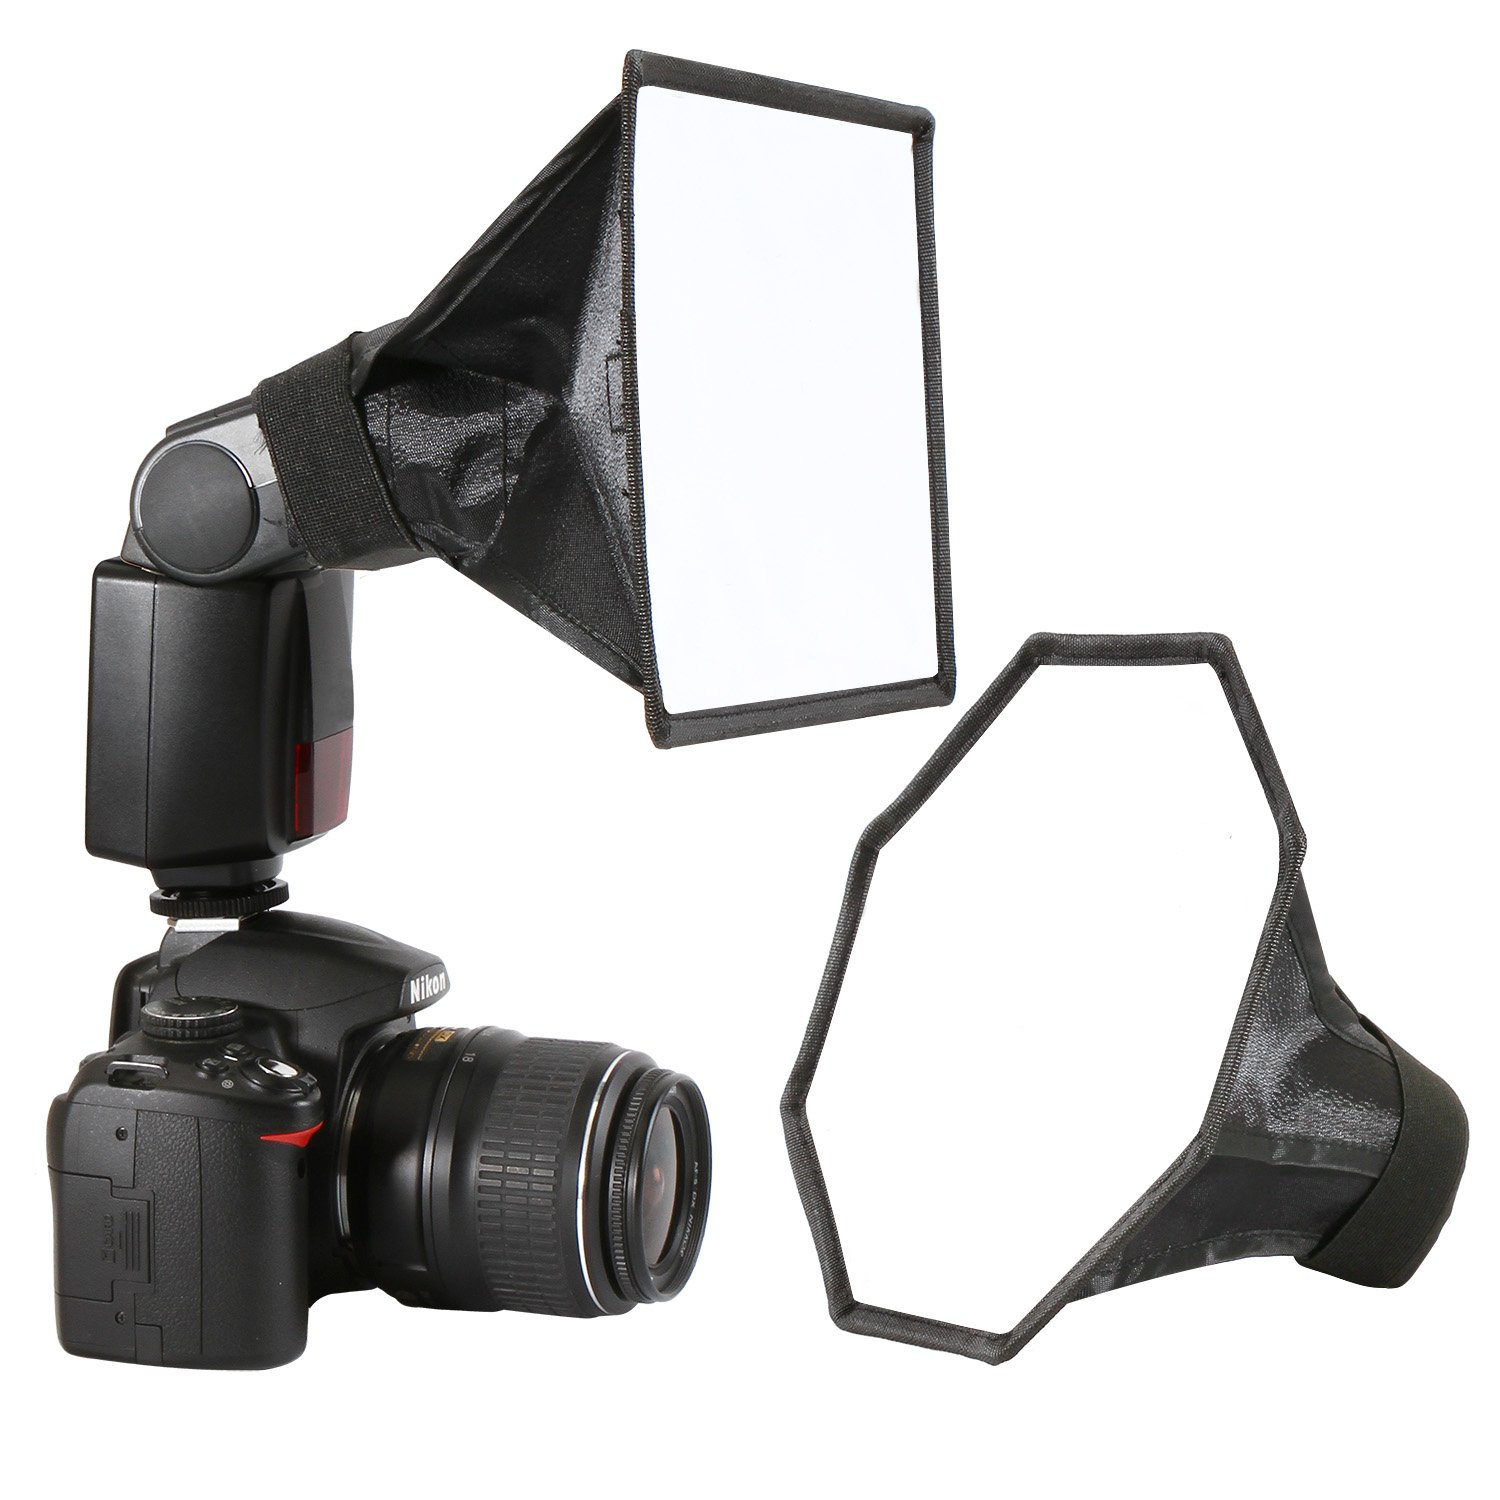 waka Flash Diffuser Light Softbox, [2 Pack] Speedlight Softbox Collapsible with Storage Pouch - 8'' Octagon Softbox + 8''x6'' for Canon, Yongnuo and Nikon Speedlight by waka